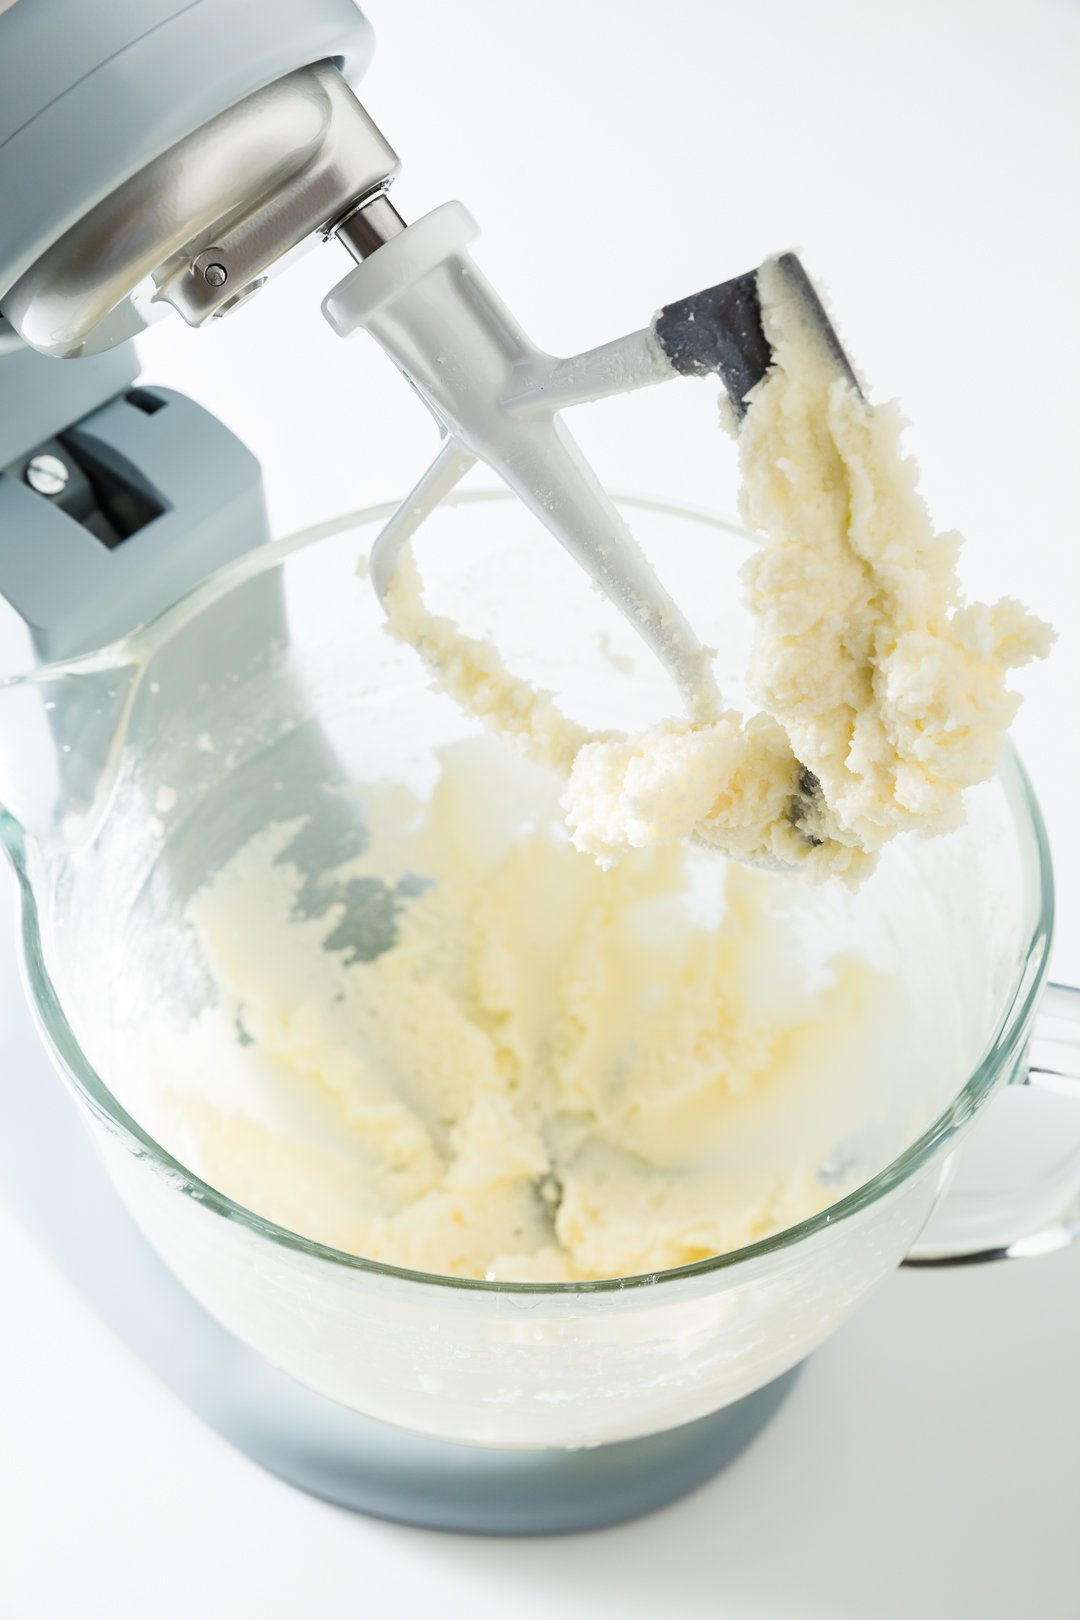 Butter and sugar creamed in a stand mixer